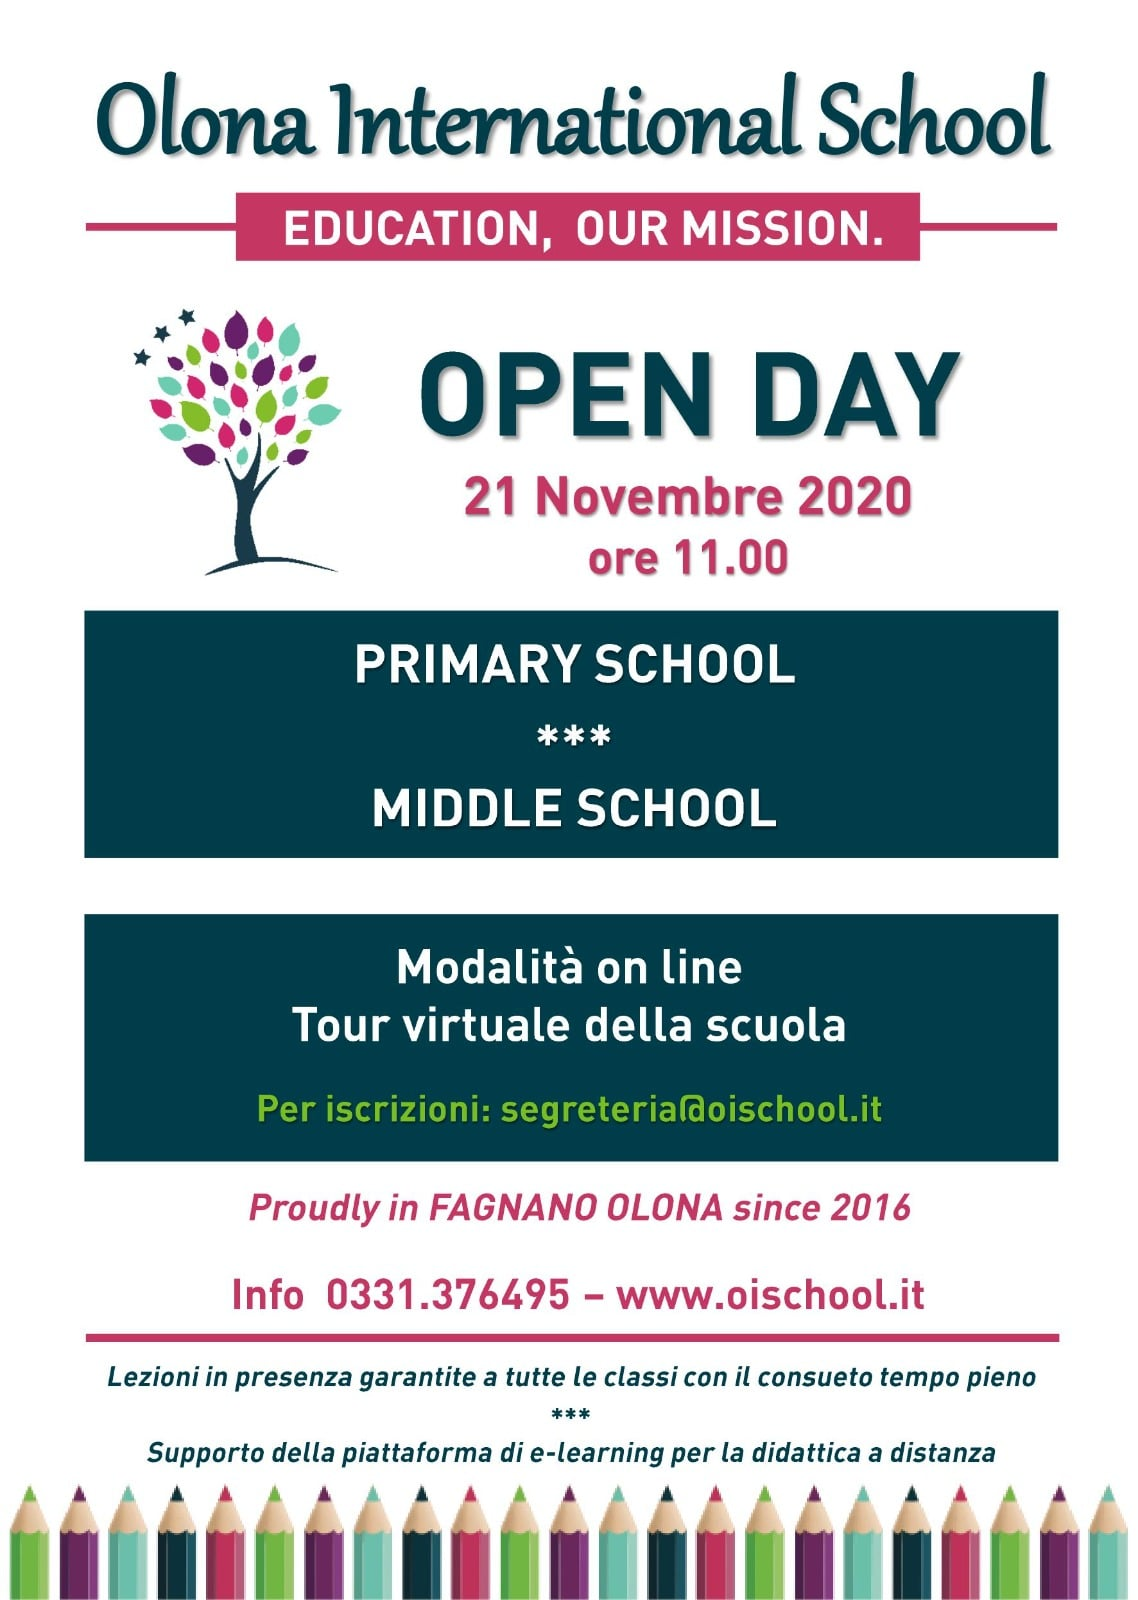 21 Novembre 2020 alle ore 11.00 Openday Online Olona International School!